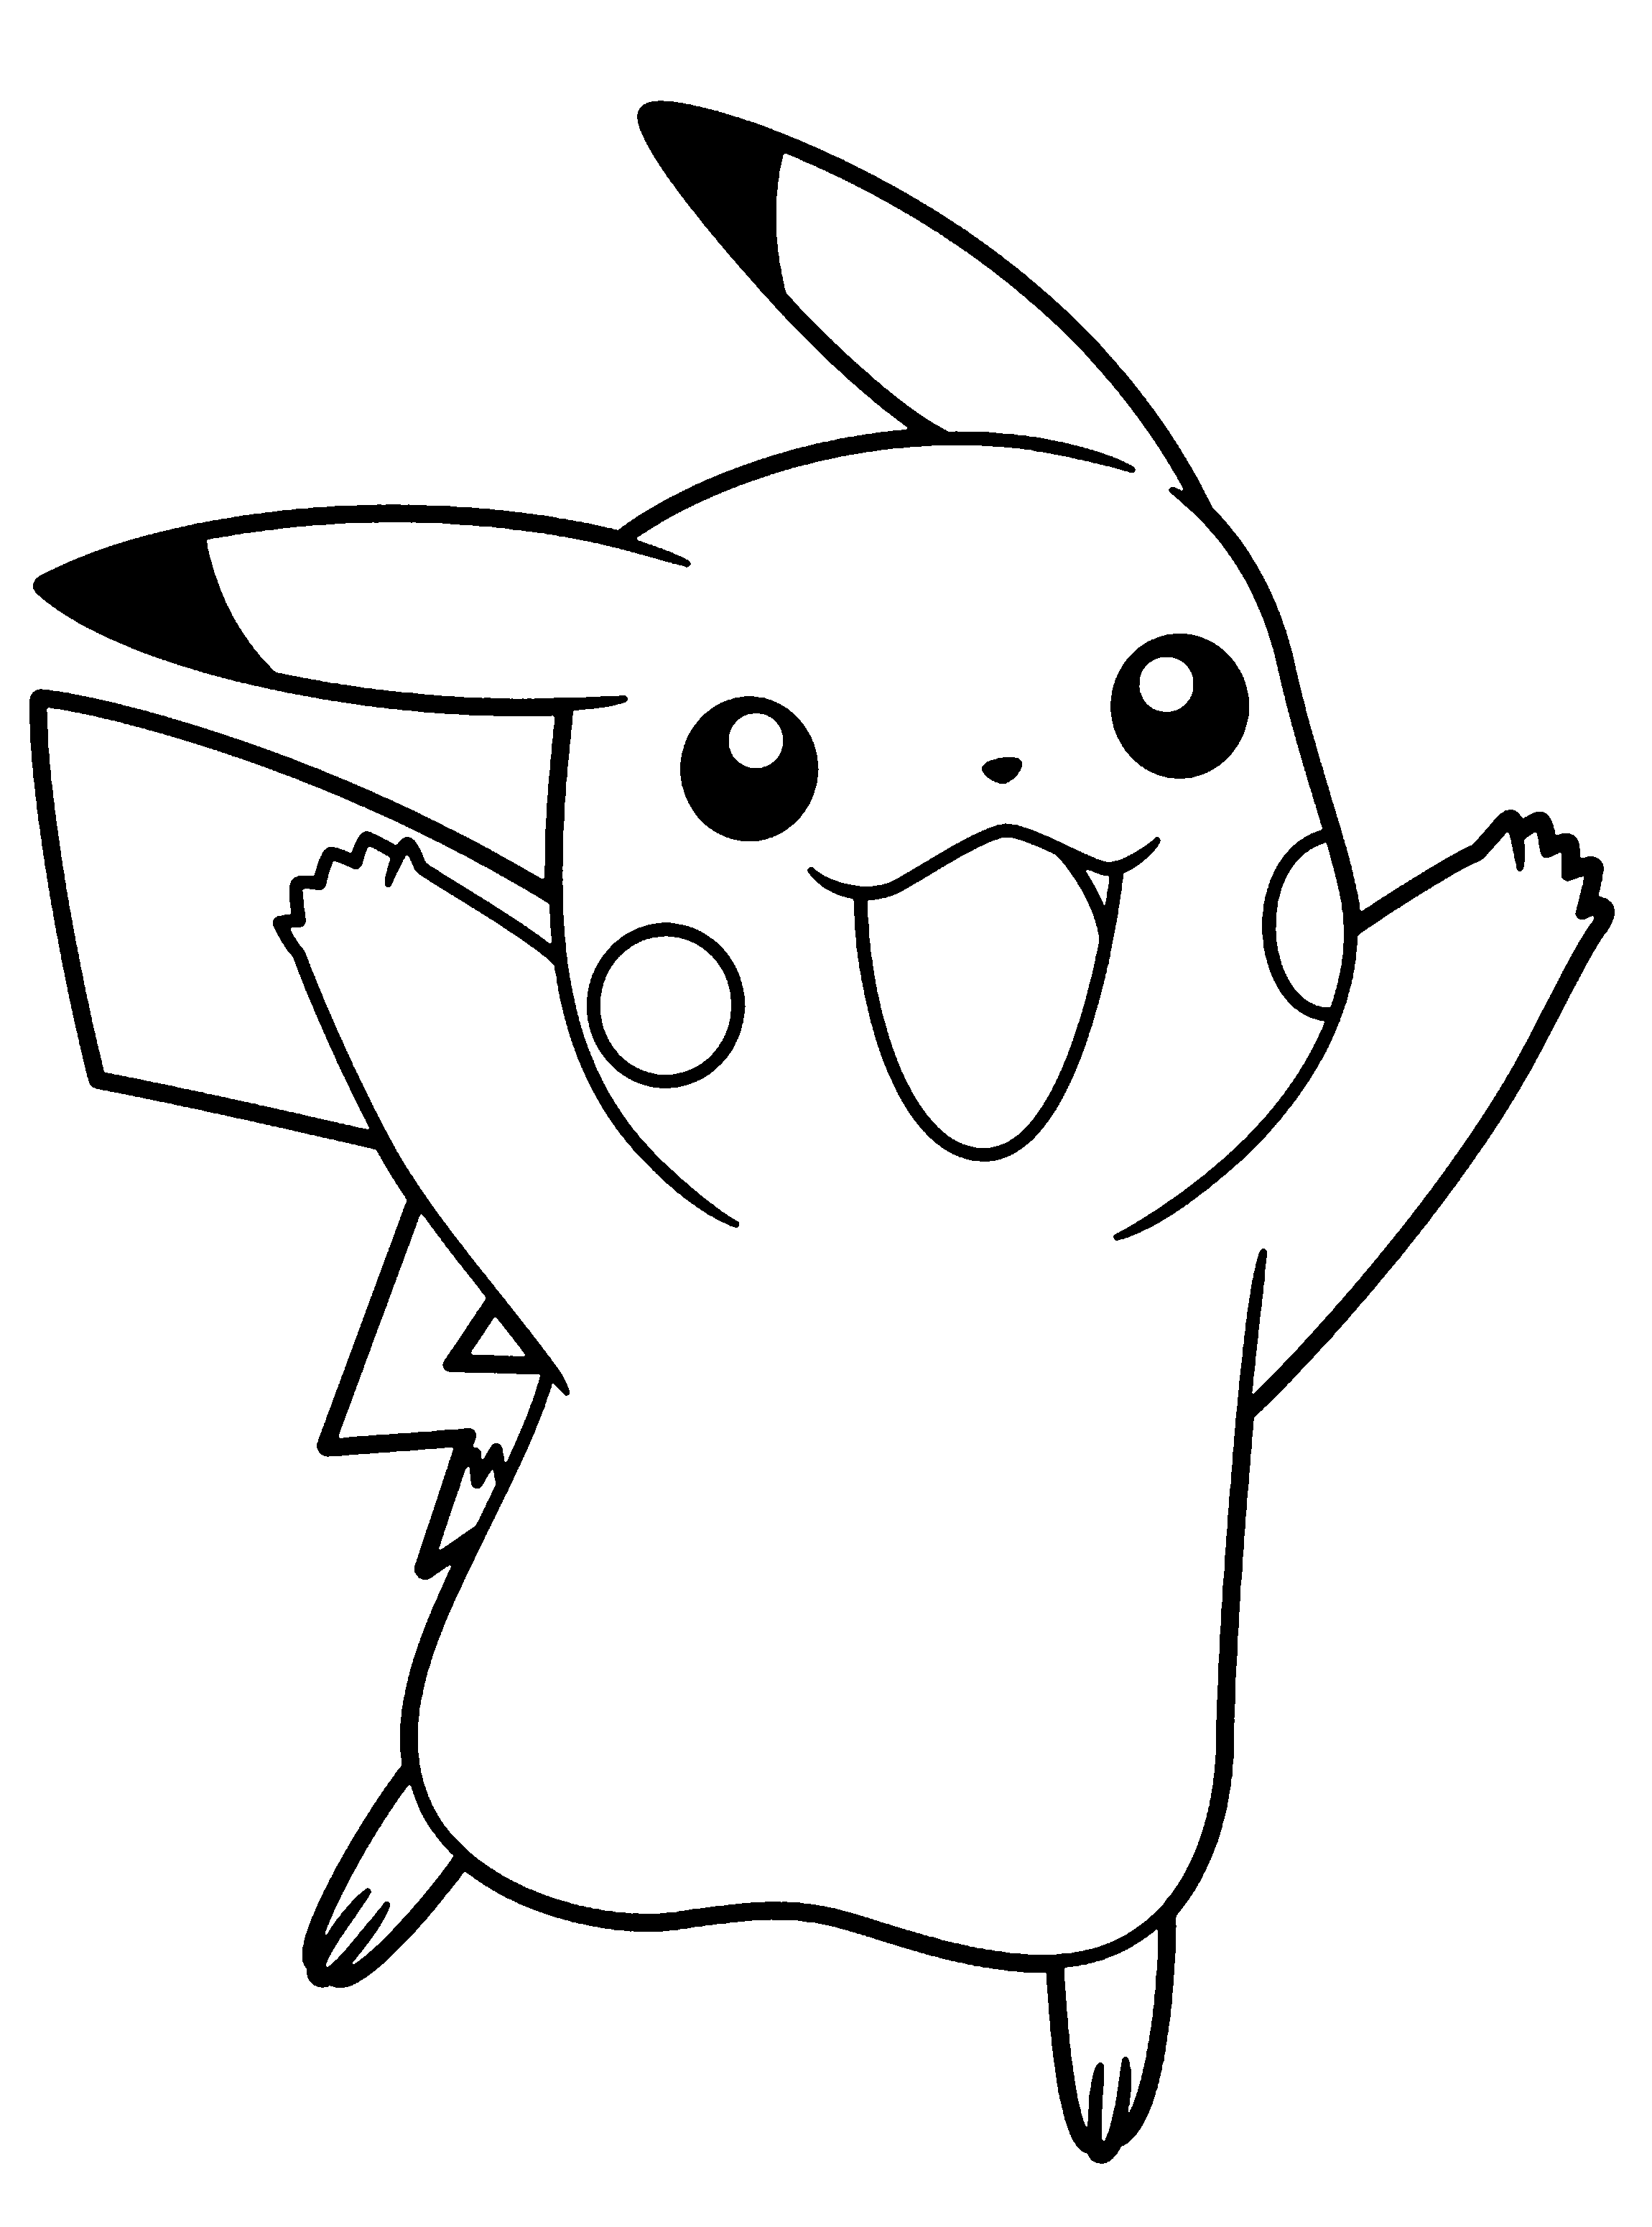 Pikachu Coloring Pages To Print Pokemon Malvorlagen Pokemon